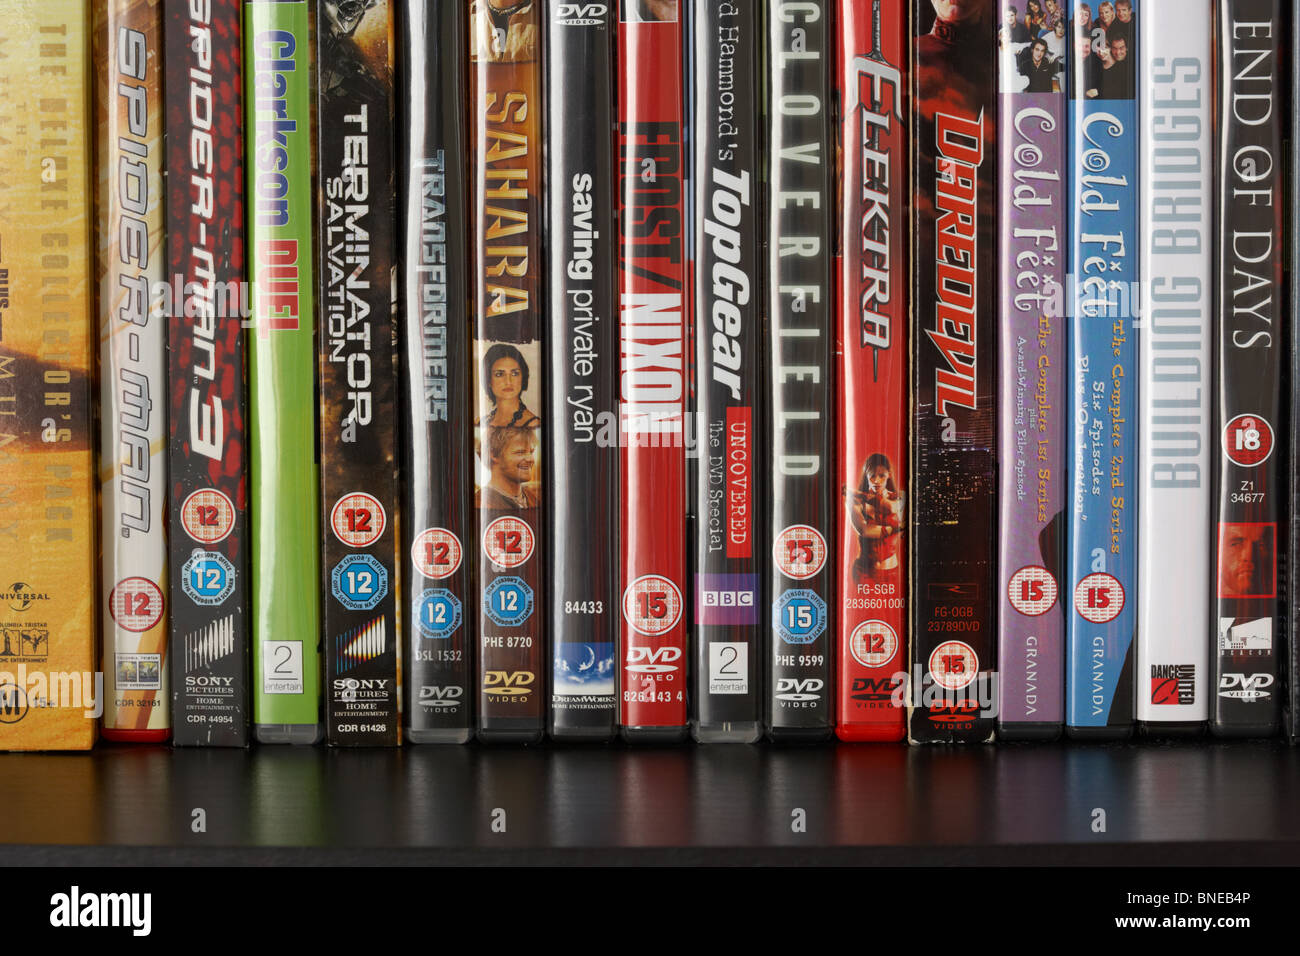 row of dvd video cases on a shelf showing a range of BBFC and irish film